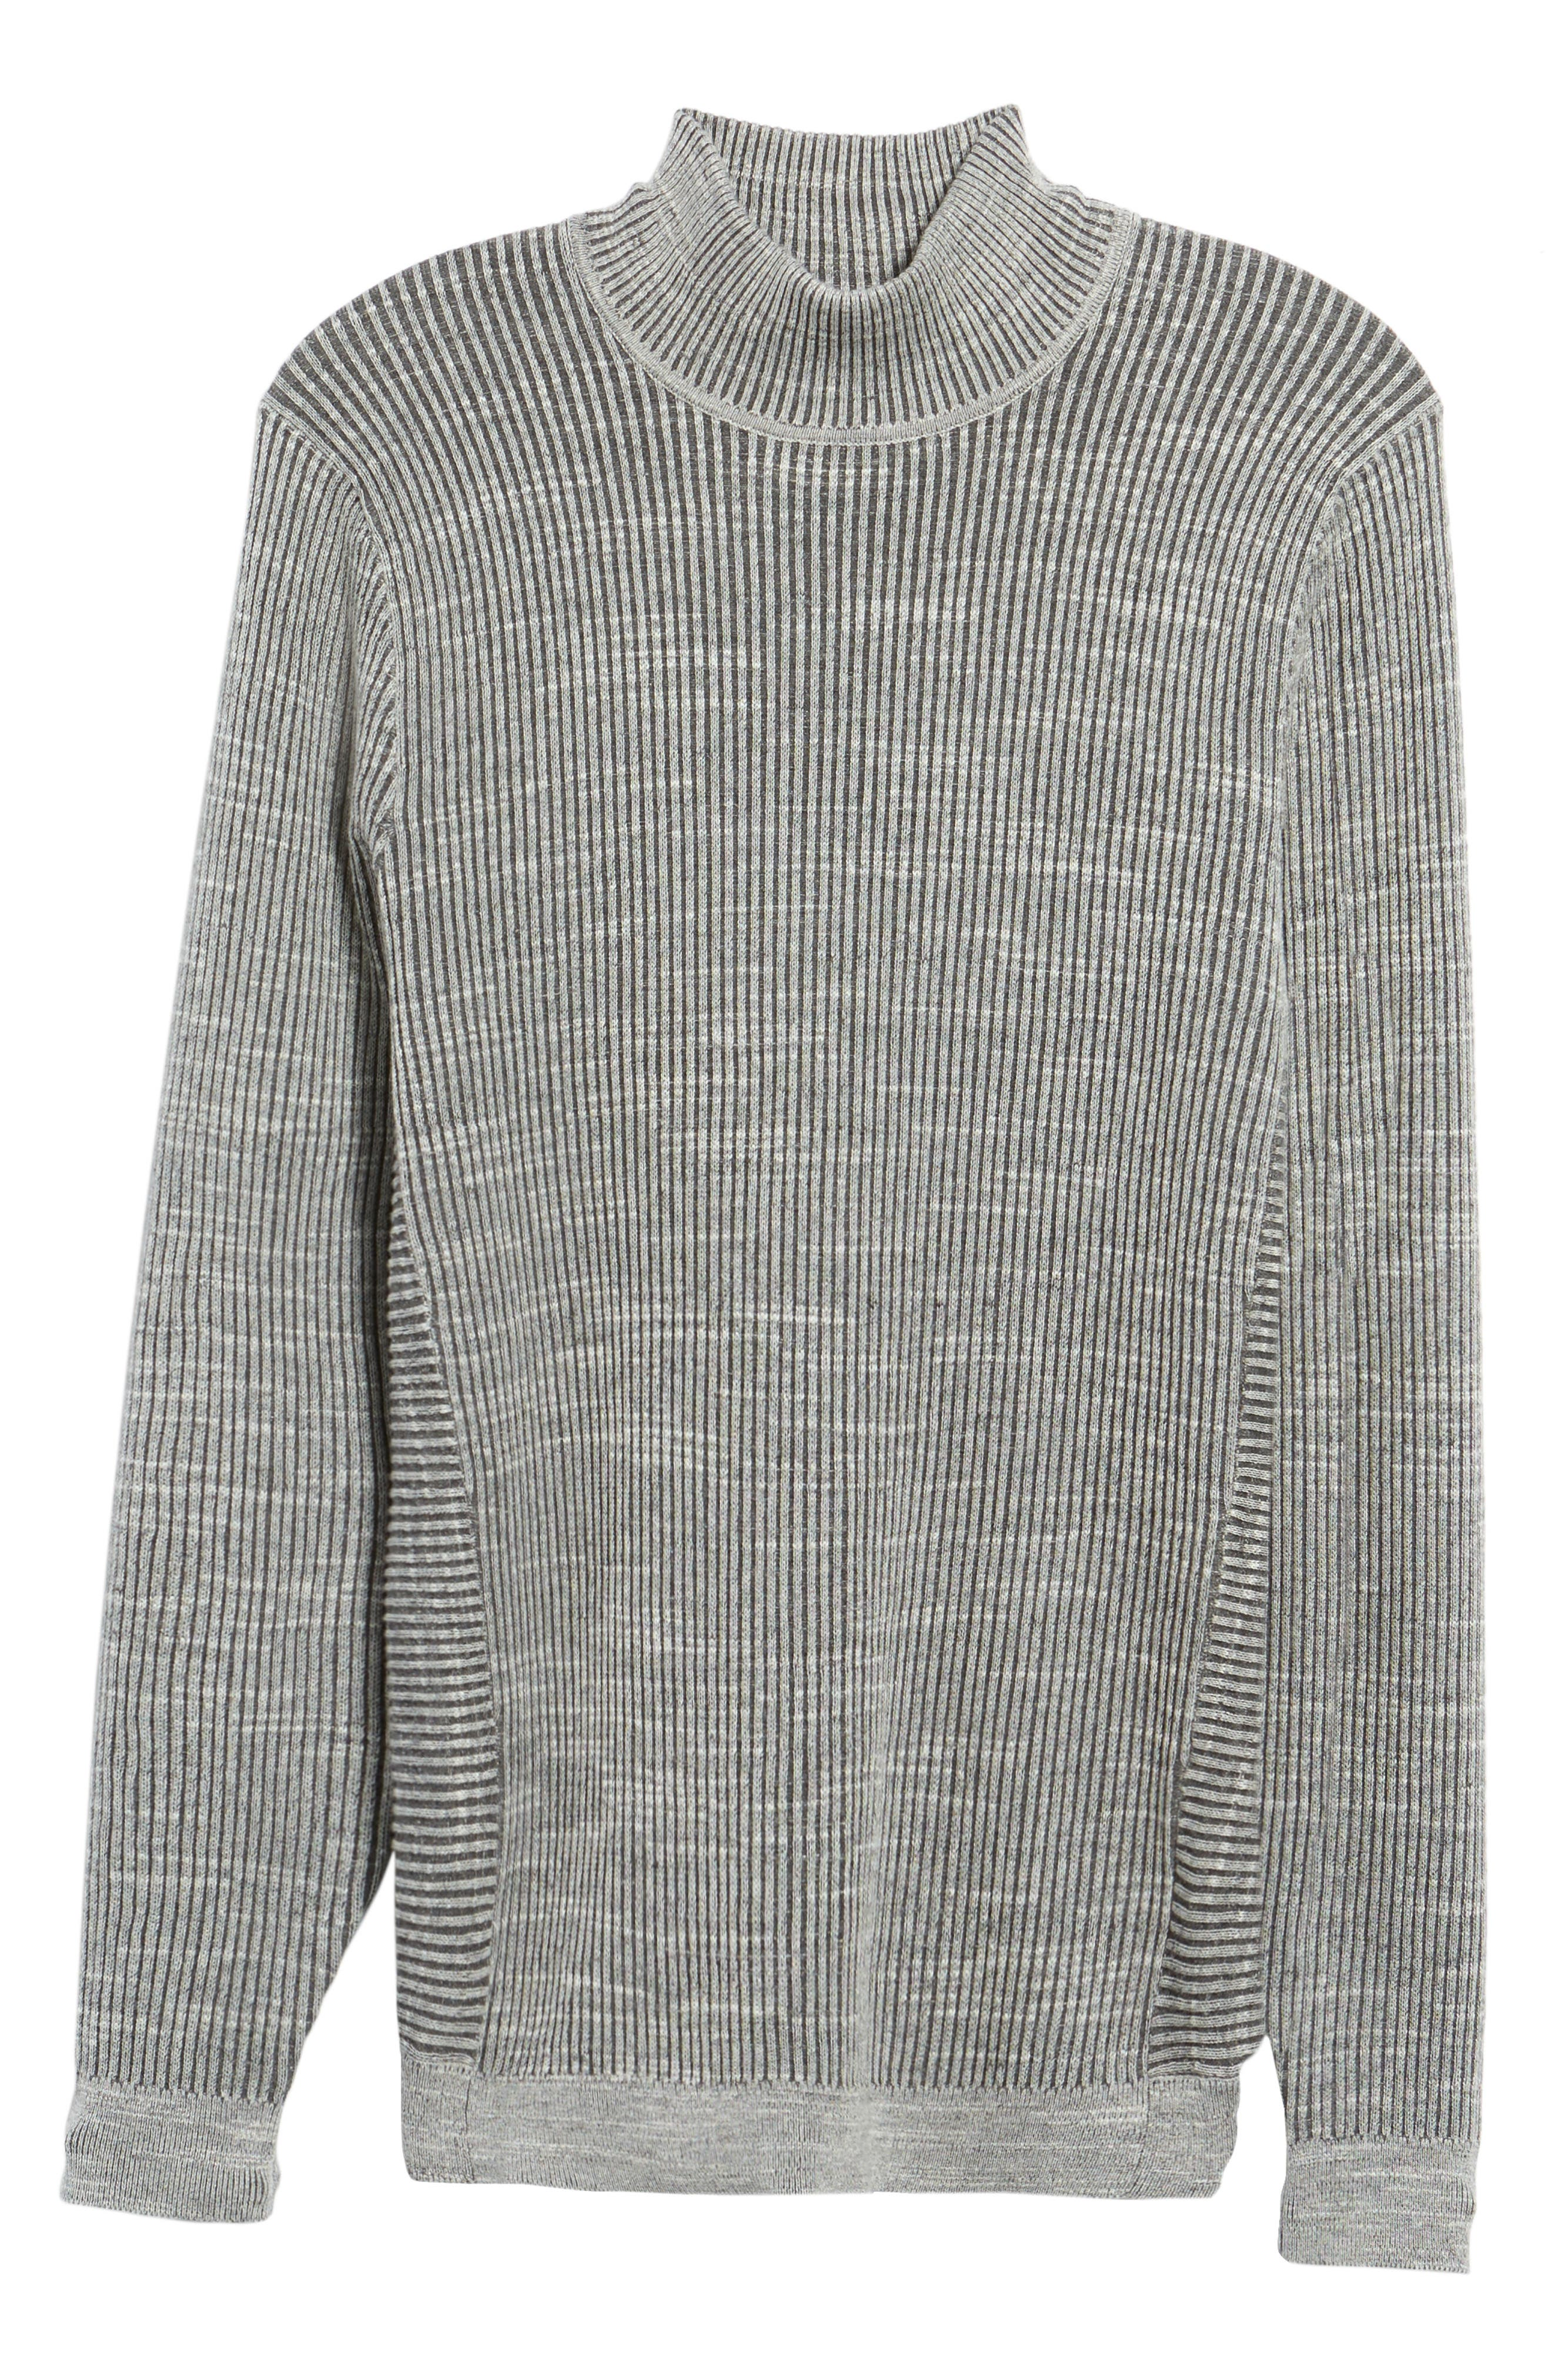 Mock Neck Sweater,                             Alternate thumbnail 6, color,                             021